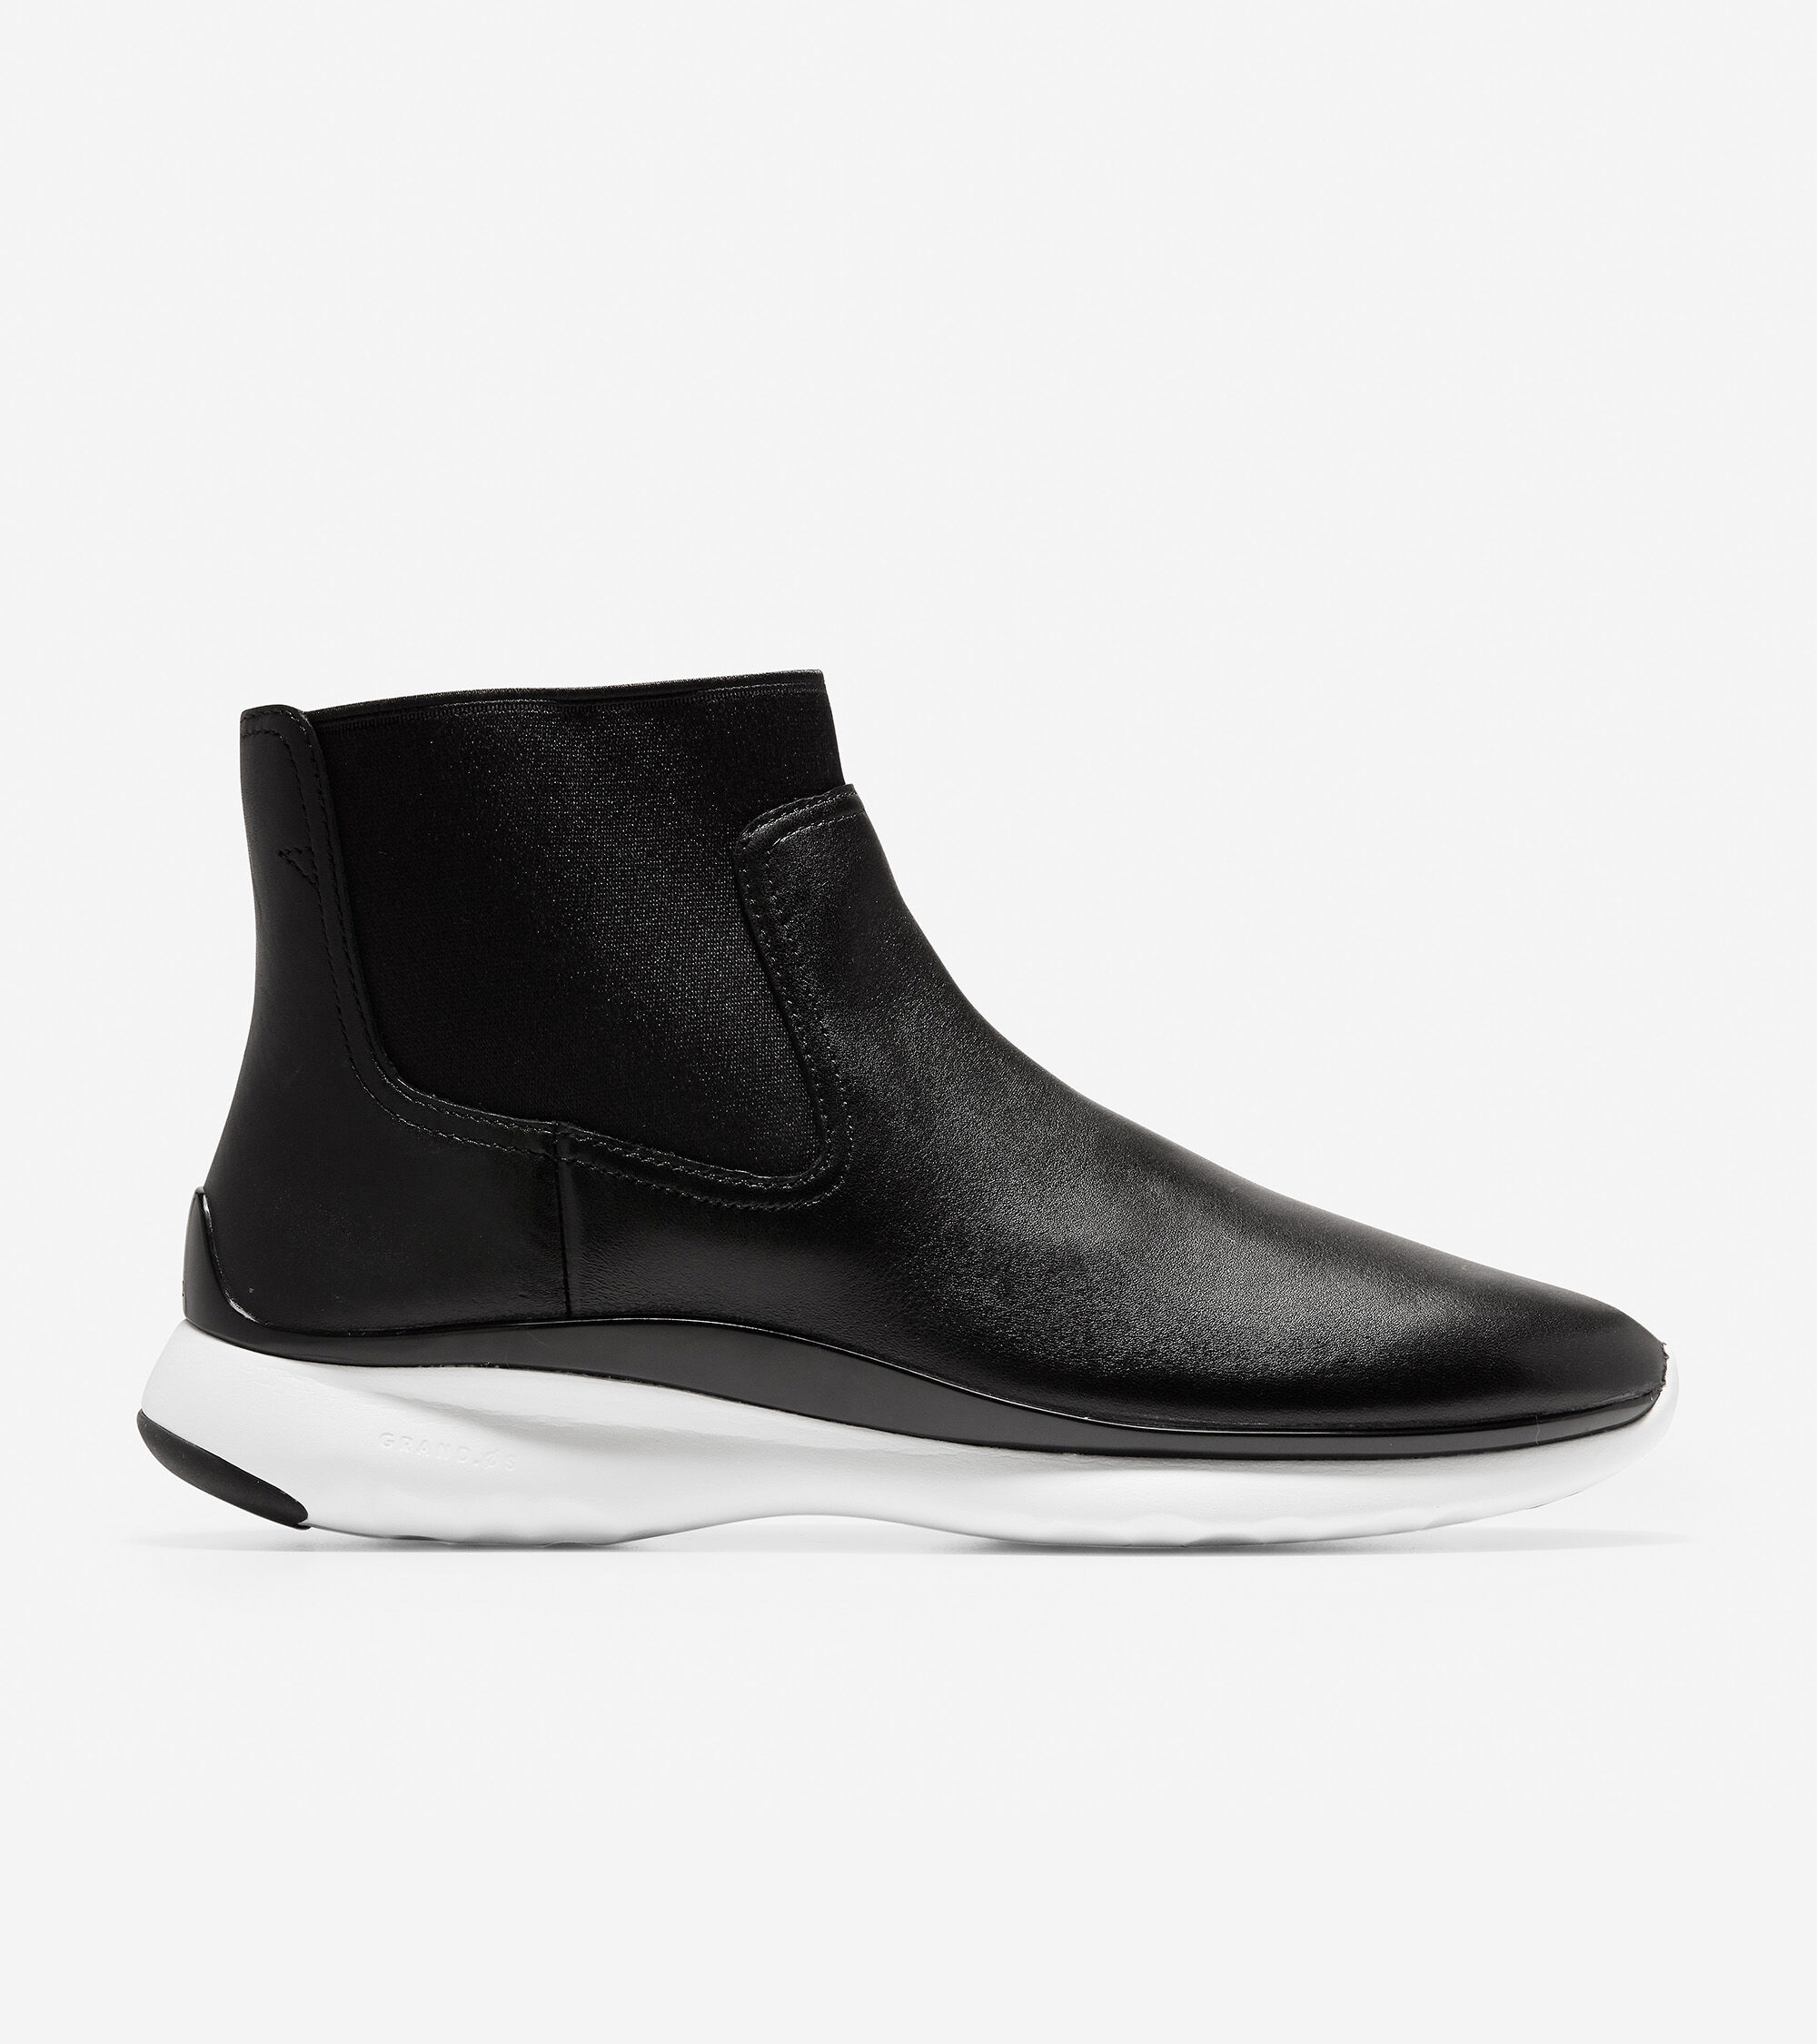 e0f37727dc2 Women s 3.ZEROGRAND Waterproof Chelsea Boots in Black-White